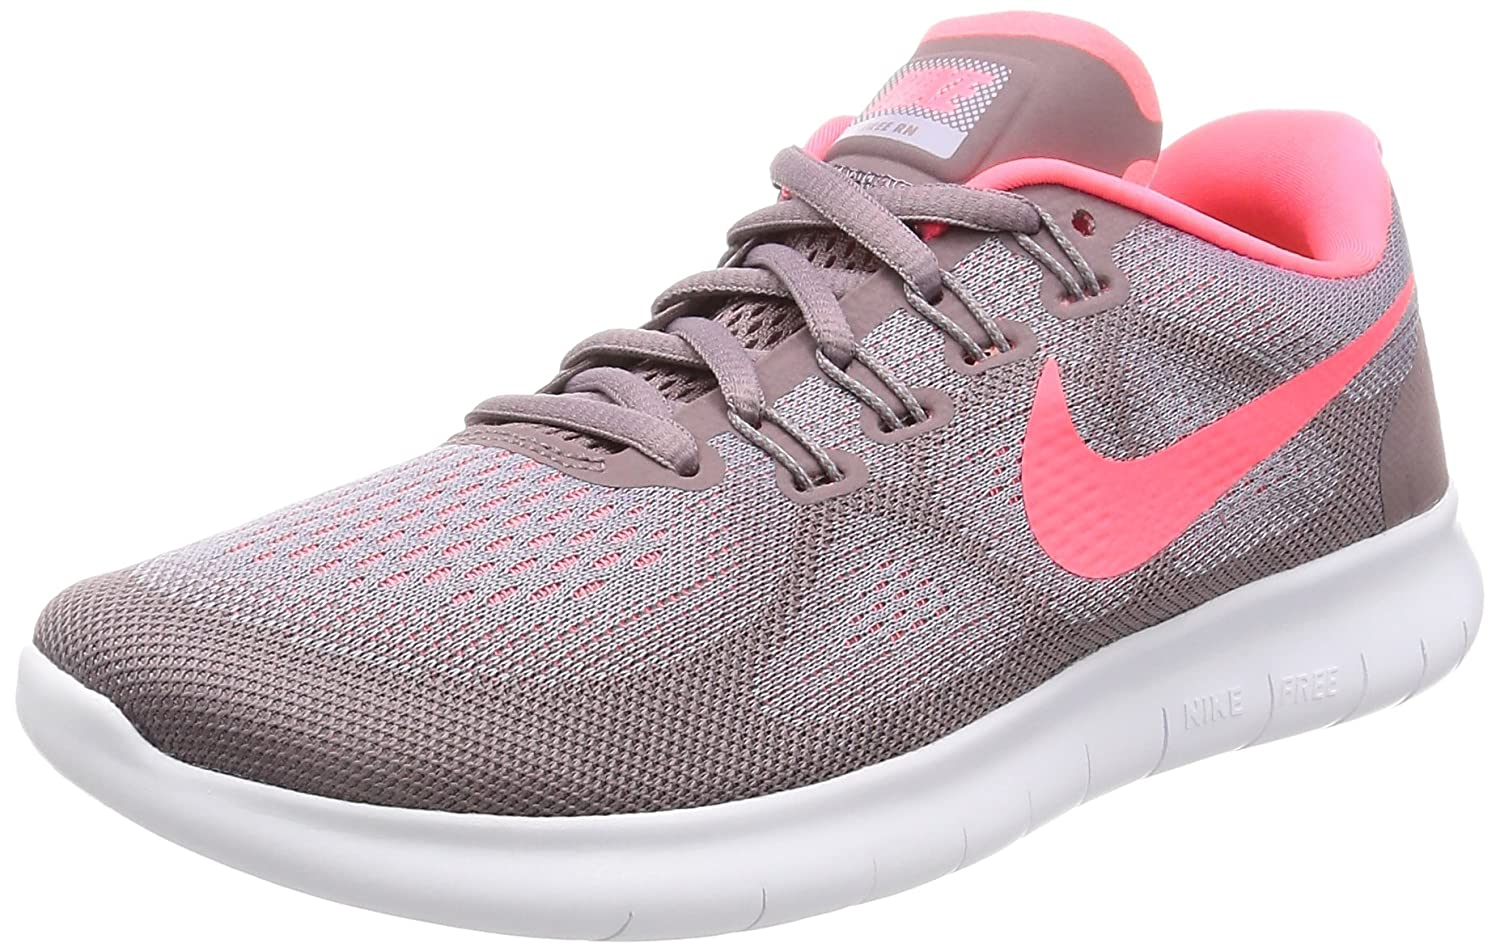 Rose (Violet Provence gris Taupe Pêche Glacé Rouge Cocktail) Nike WMNS Free RN 2017, Chaussures de Running Femme 42 EU